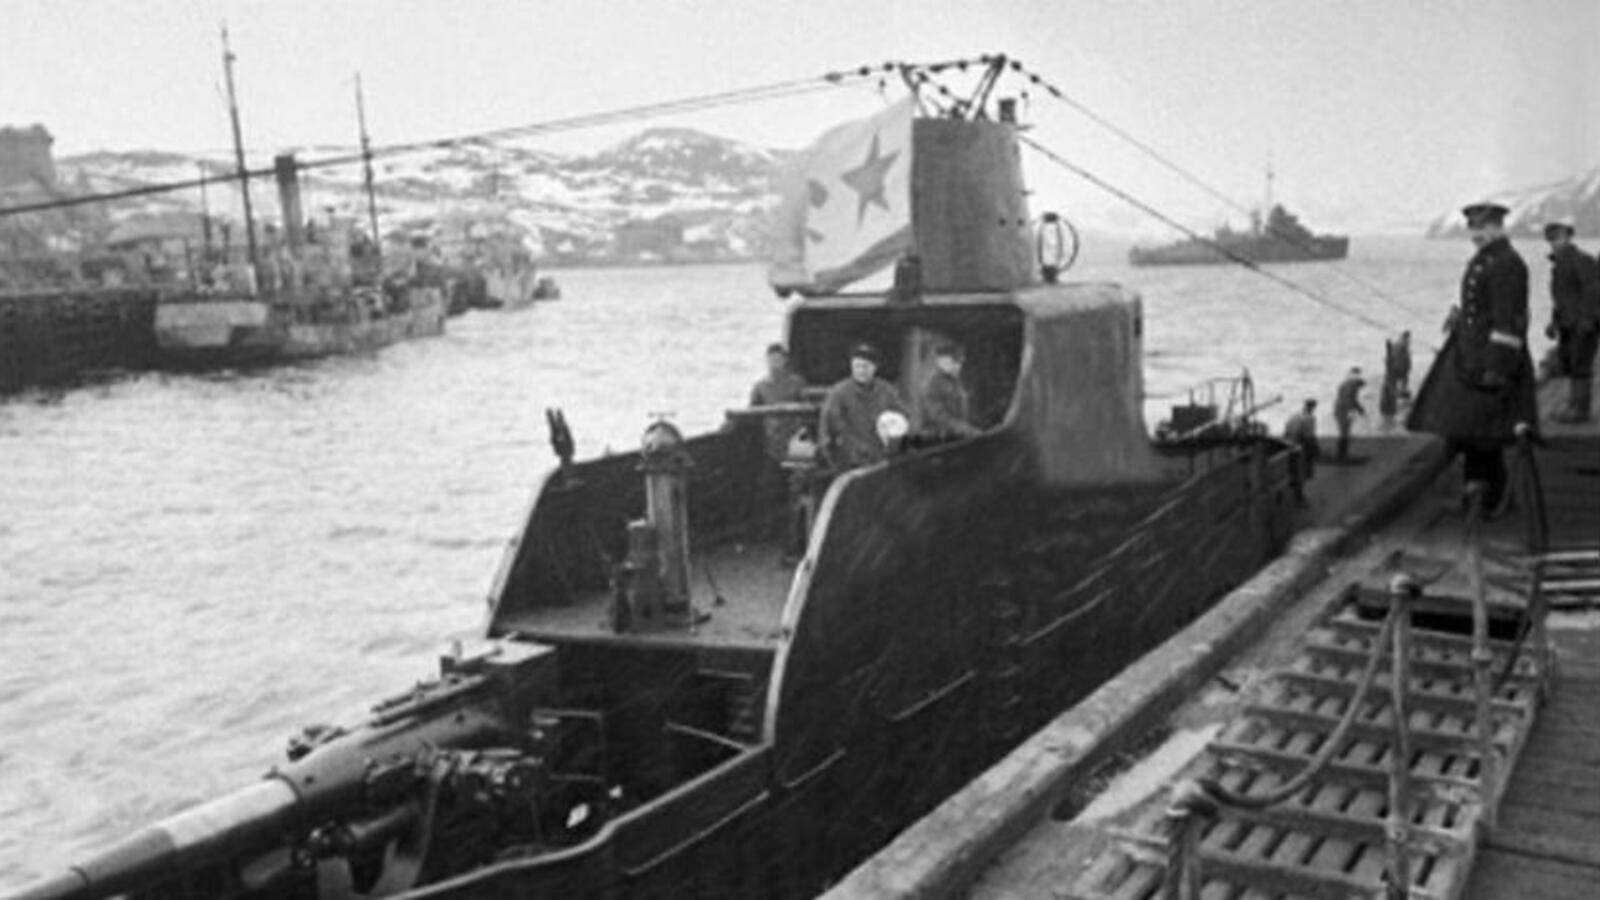 The U-966 Gut Holz was found off the coast of Spain. (AFP/ File Photo)